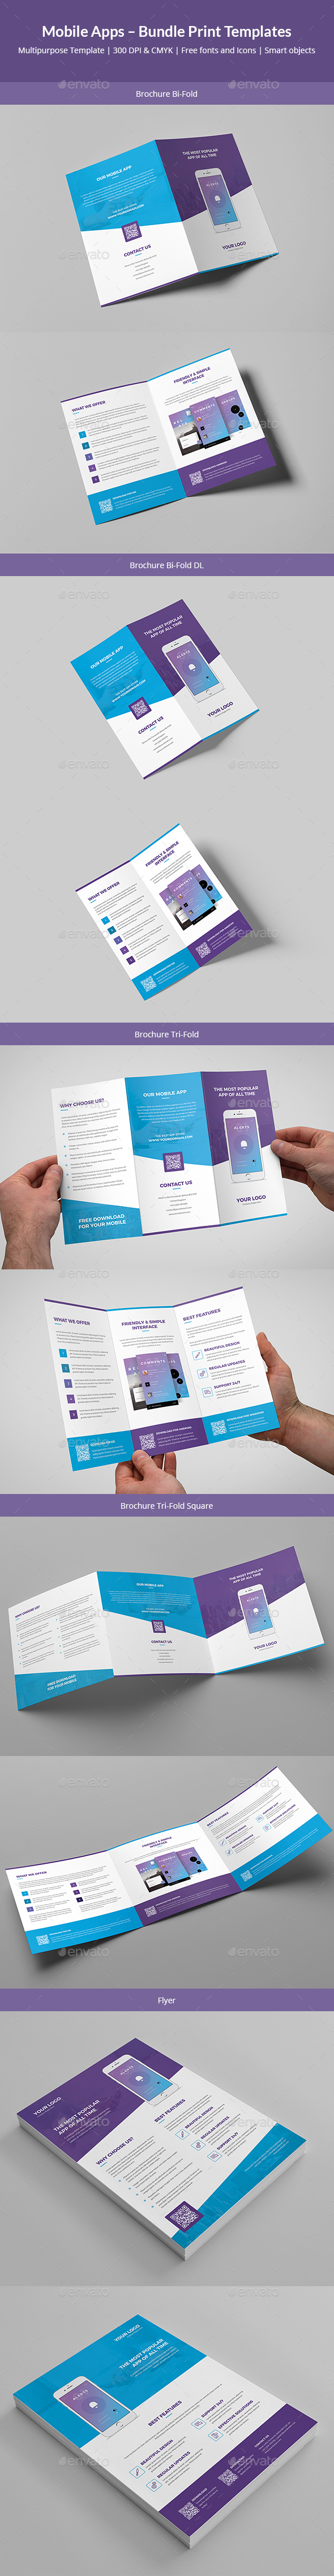 Mobile Apps – Bundle Print Templates - Corporate Brochures